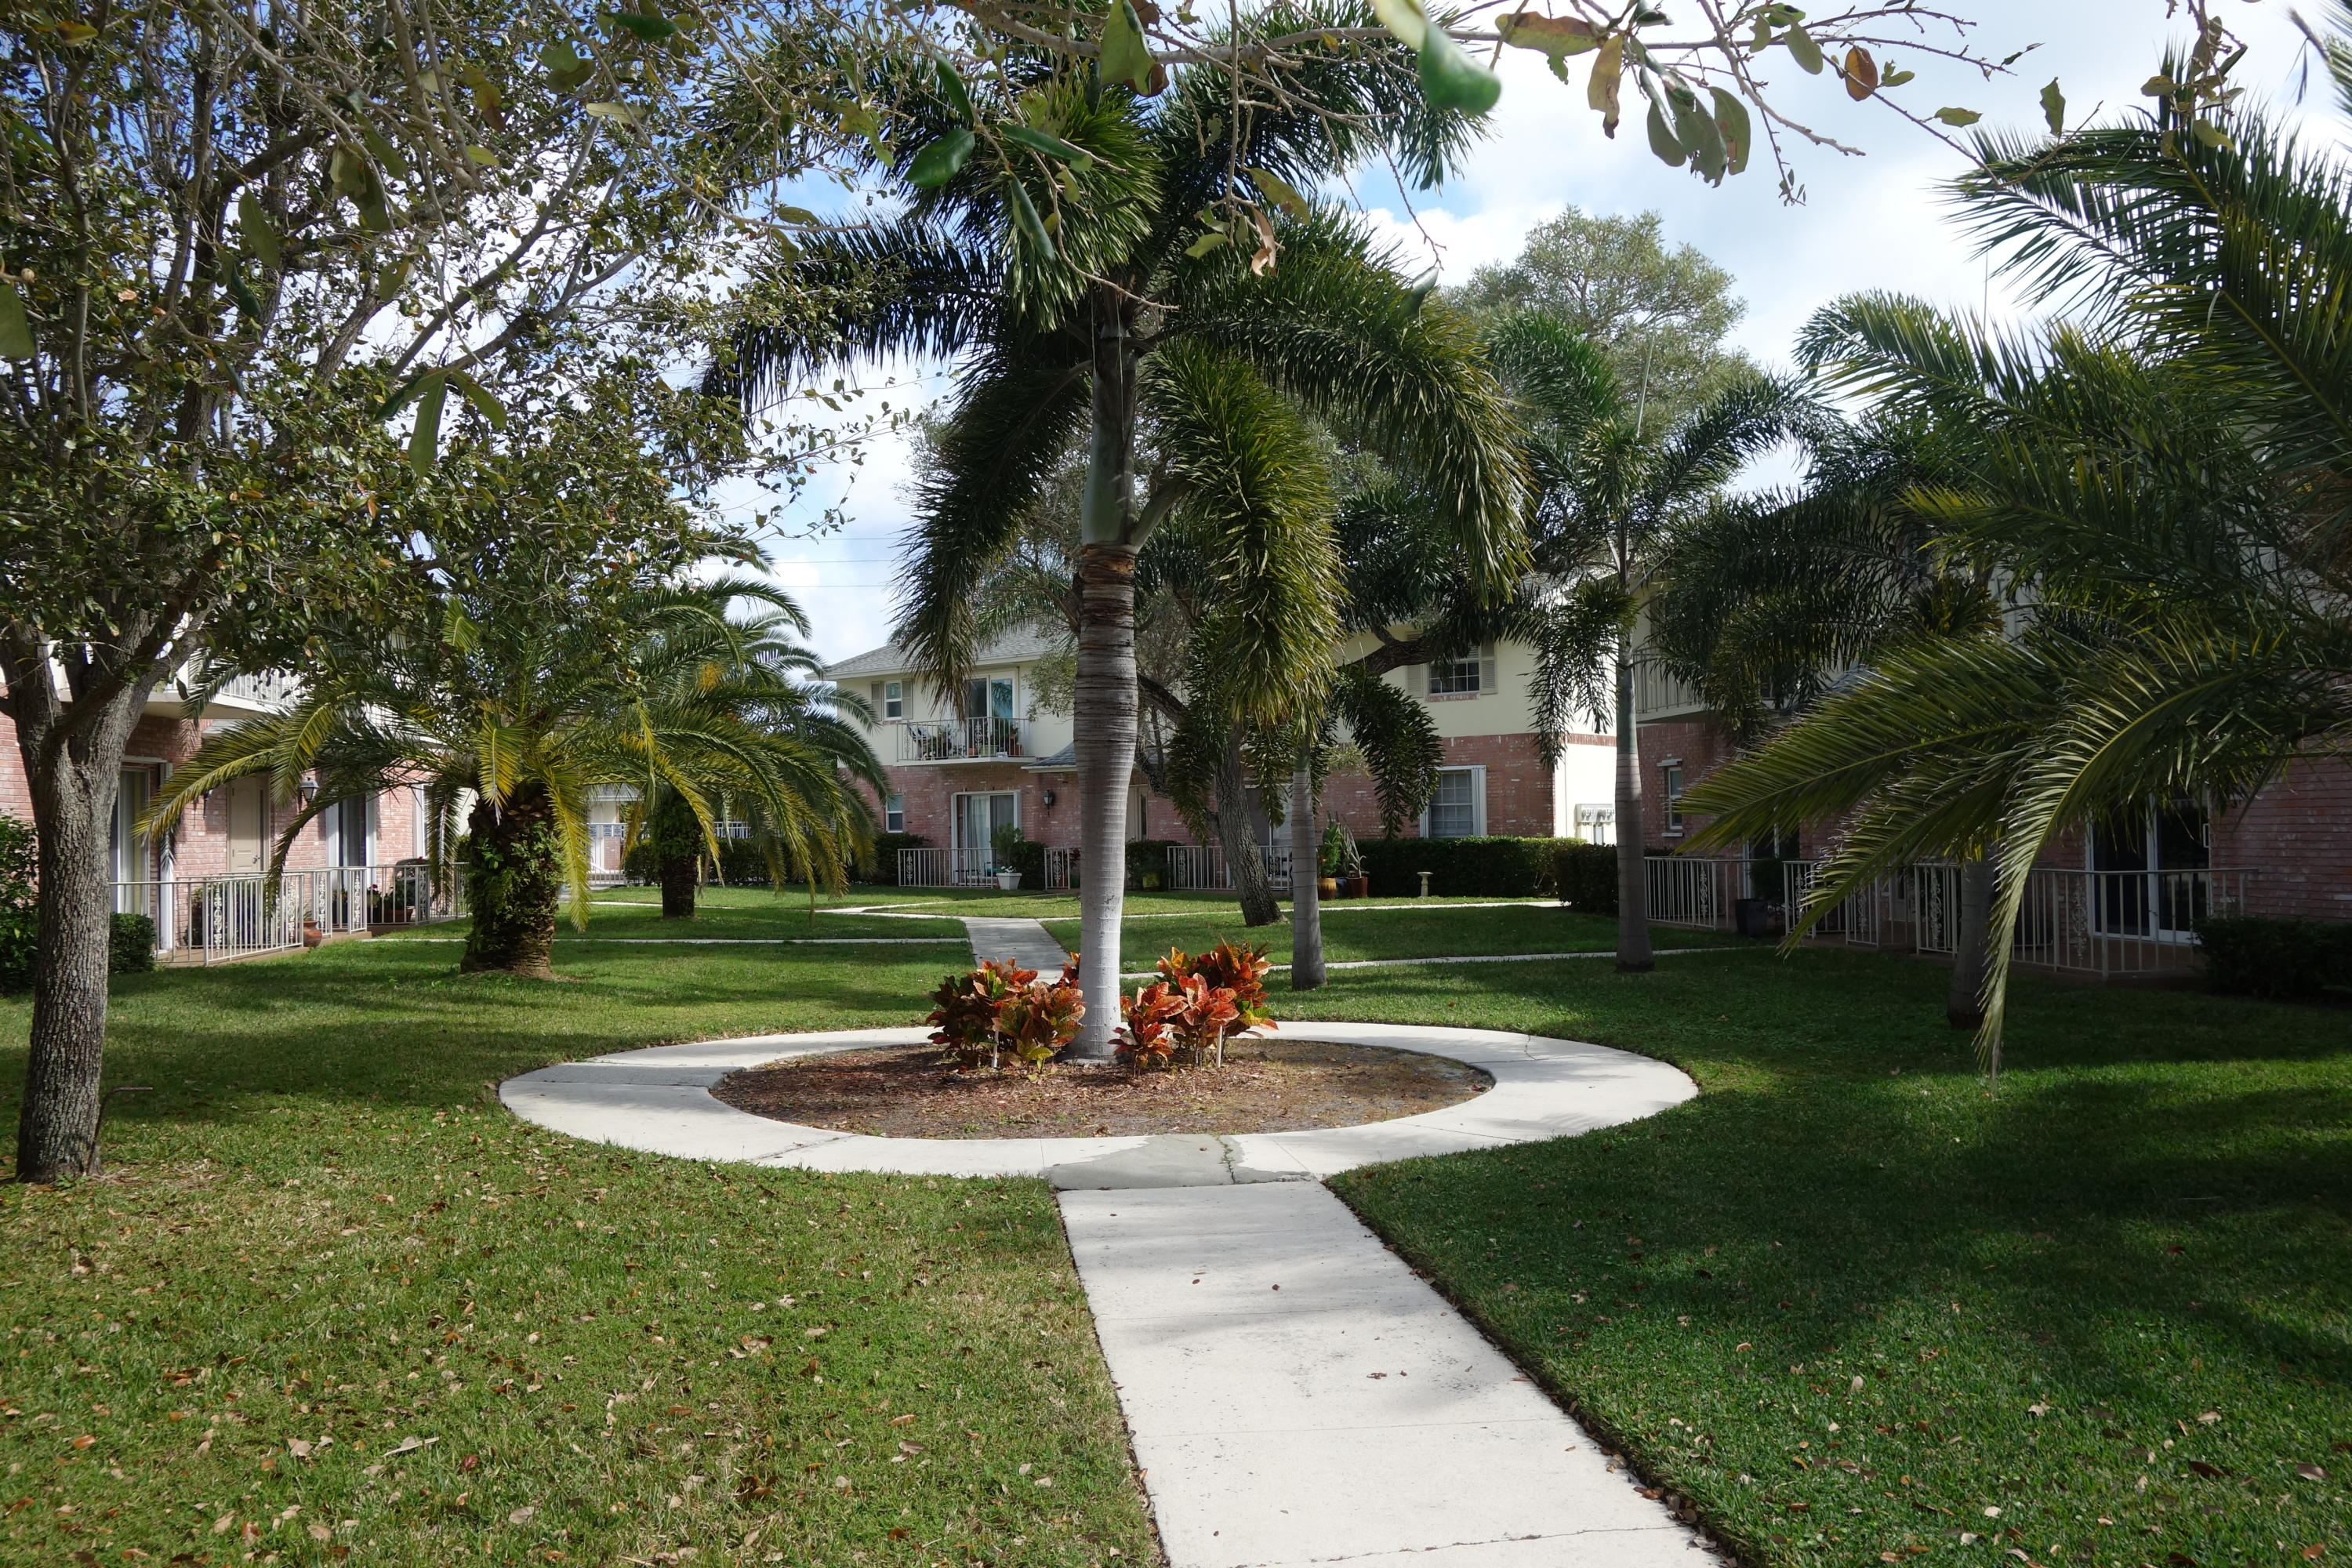 Spacious and well maintained 2BR-2BTH condo in a charming and unique community that is just minutes to beaches, restaurants, newly built library, activities, civic center, downtown Delray, and more. So convenient!The great room is comfortable and has a balcony that overlooks a lovely garden area with trees and walkways.  Front door enters from the common garden area and a back door is convenient to your car.  Plenty of parking.  Great location.Furniture can be included if desired.